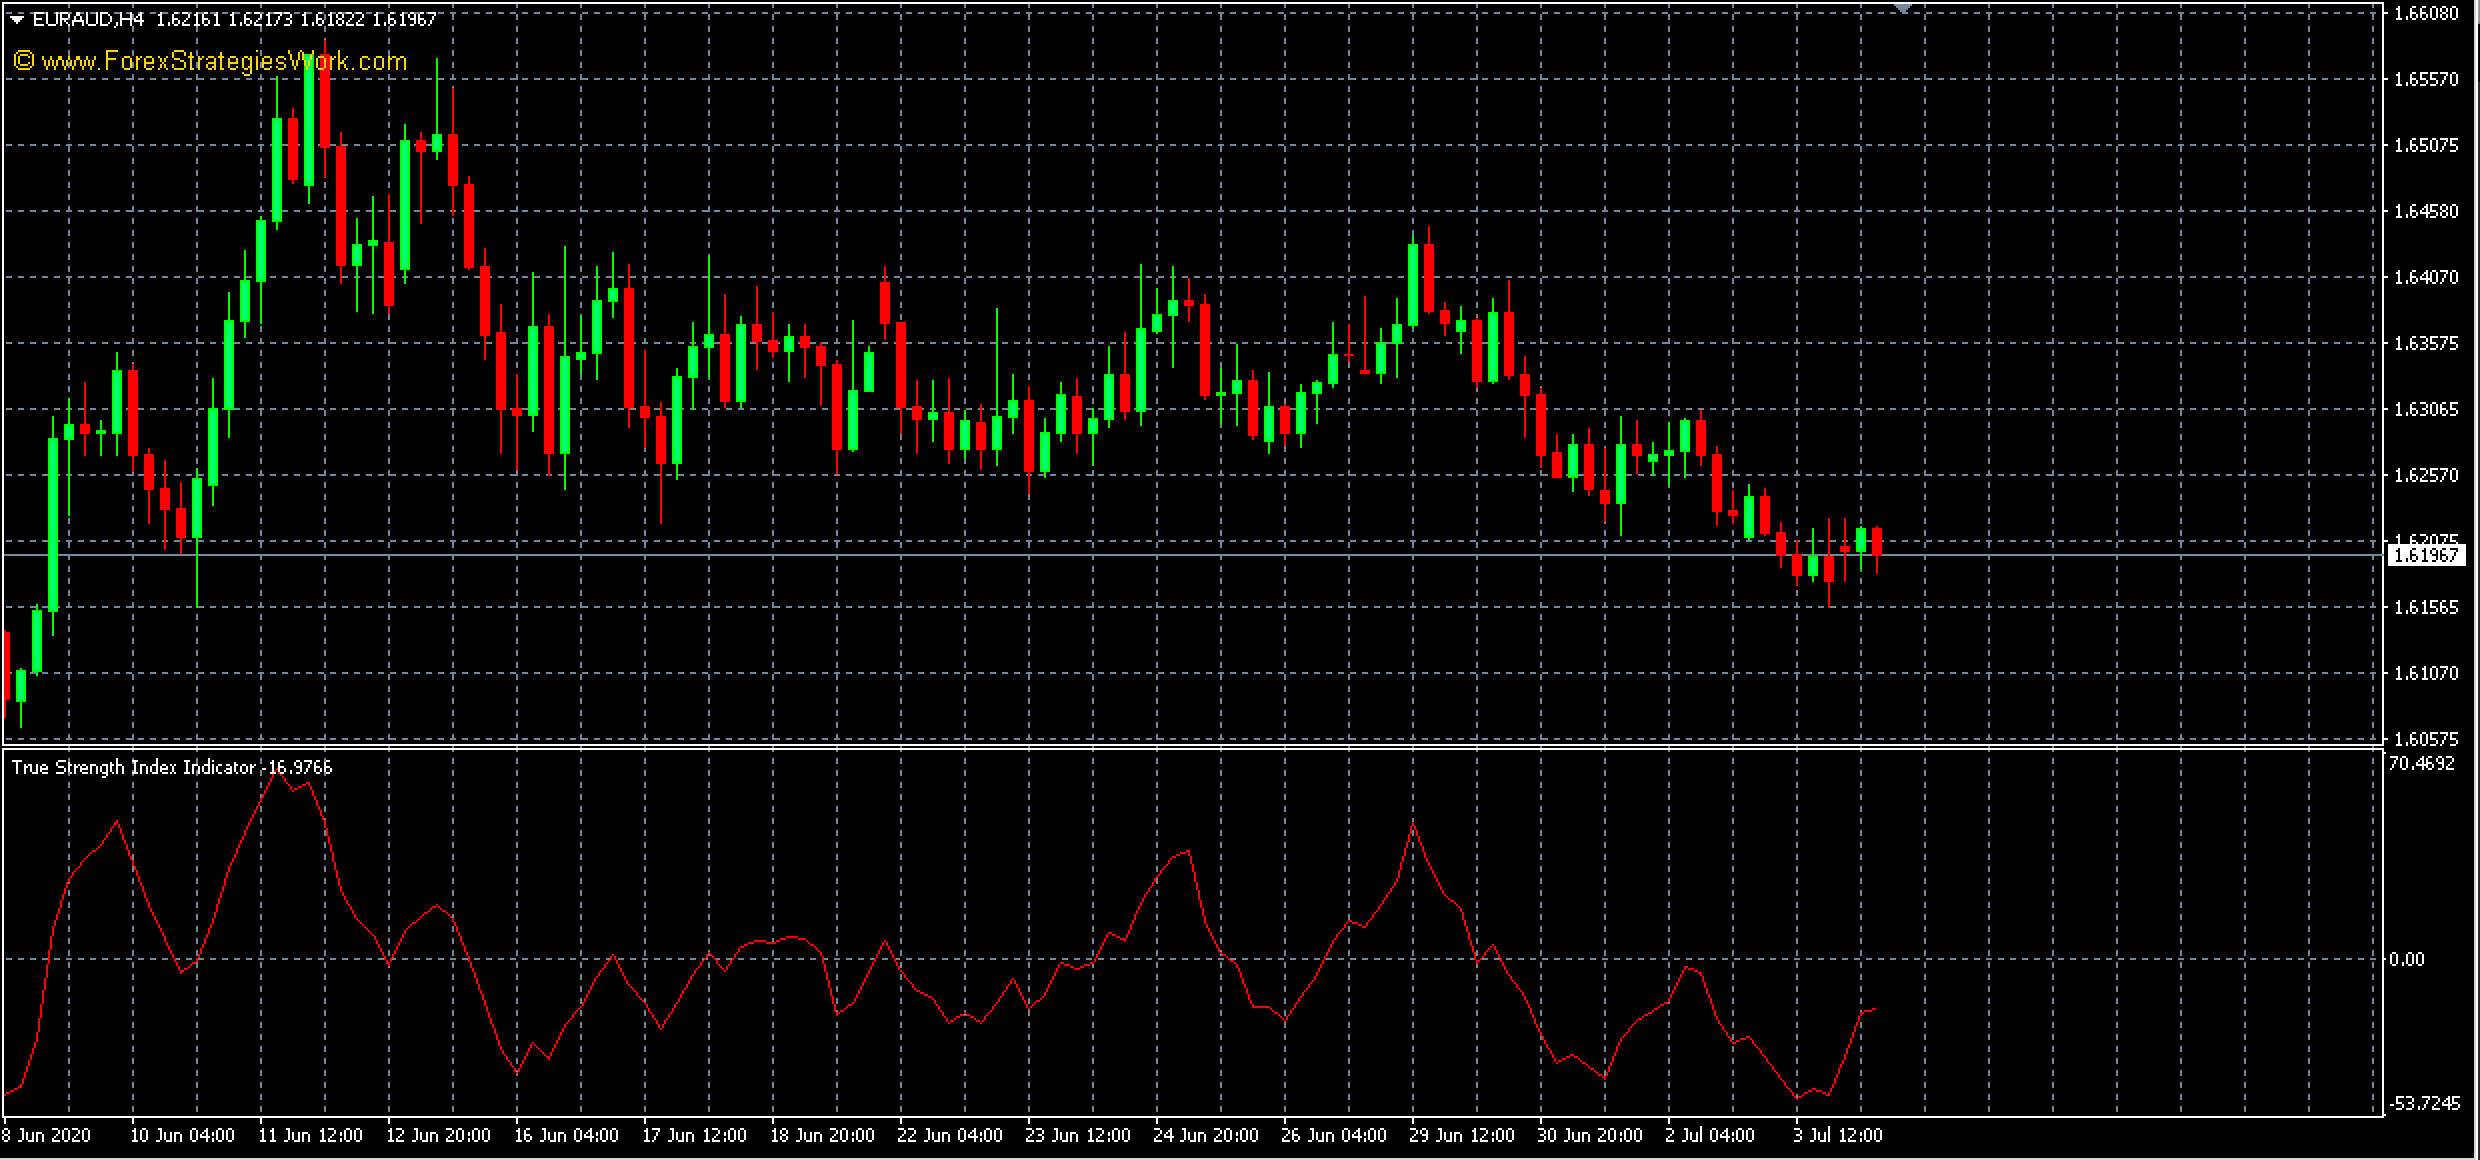 True Strength Index Indicator: When to go long?